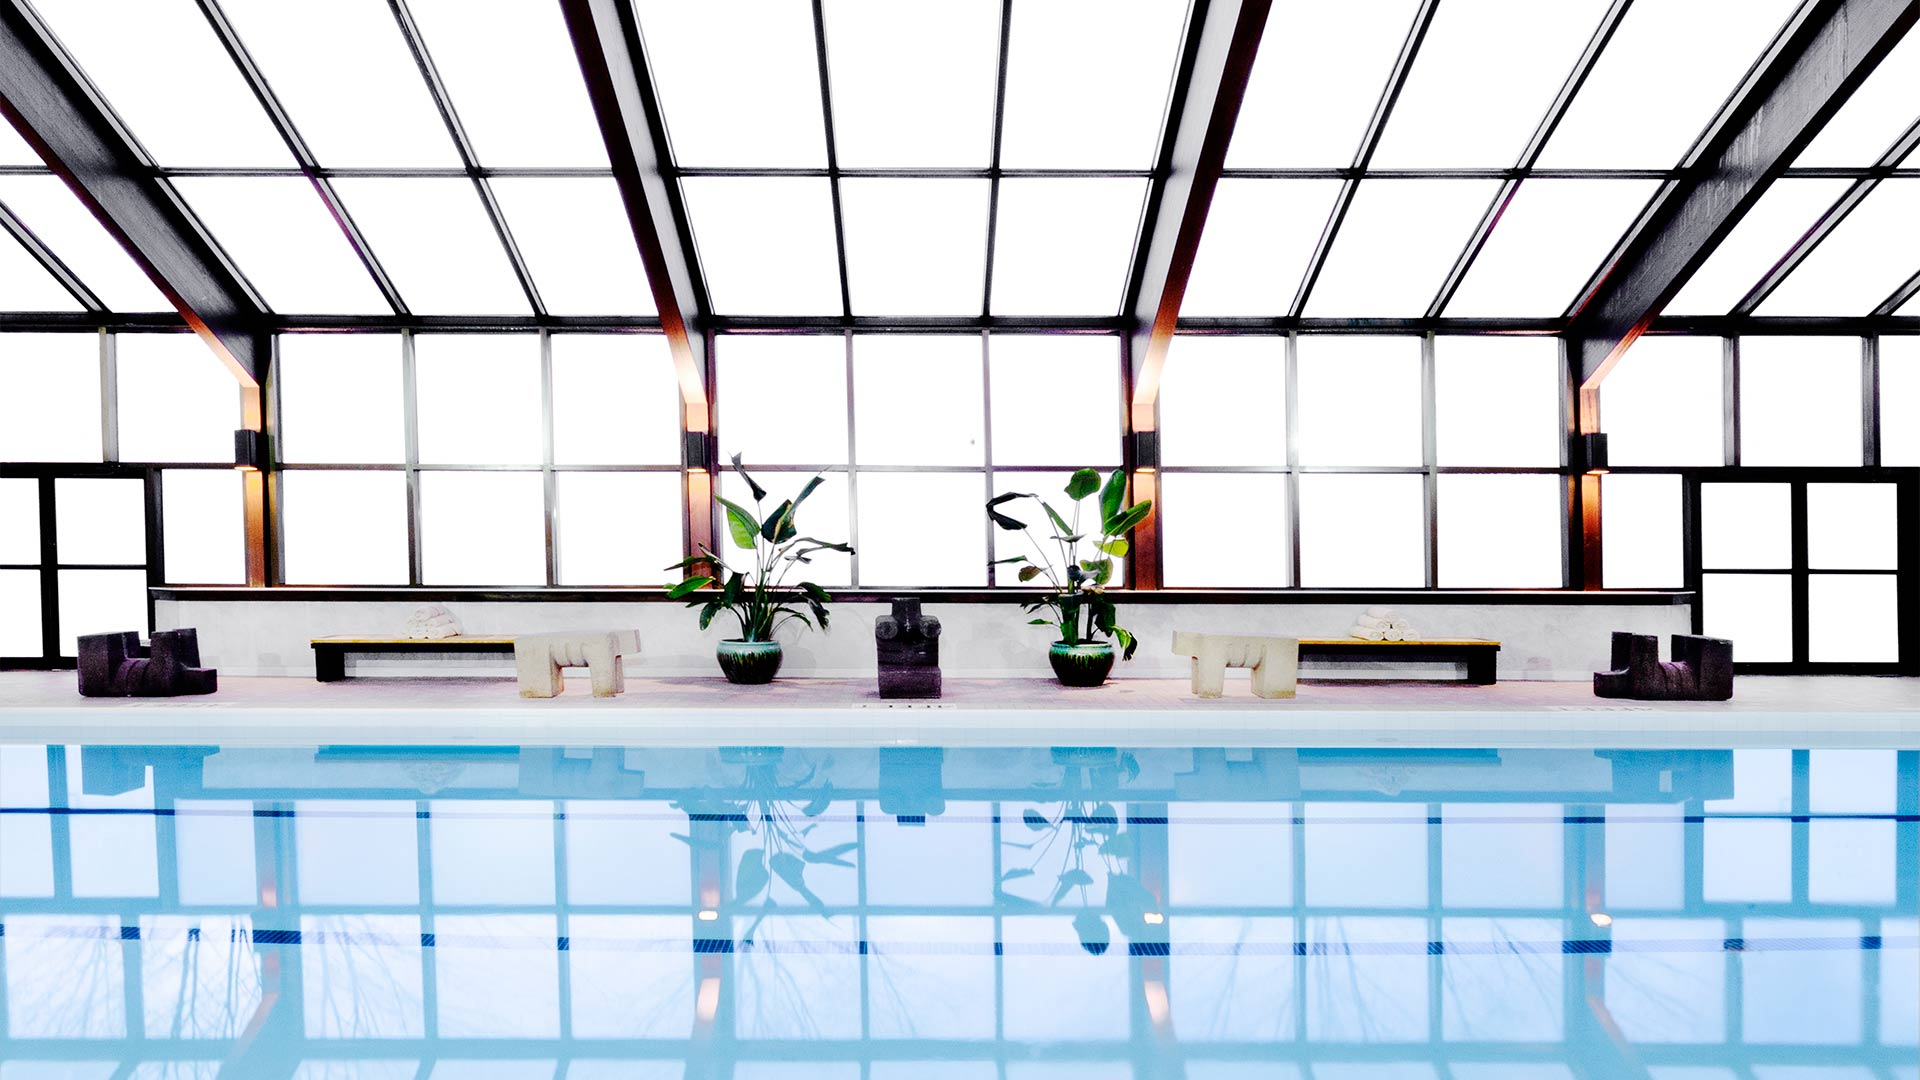 an indoor pool with ice blue water reflecting the light from the floor to ceiling window. There are benches and plants along the side of the pool